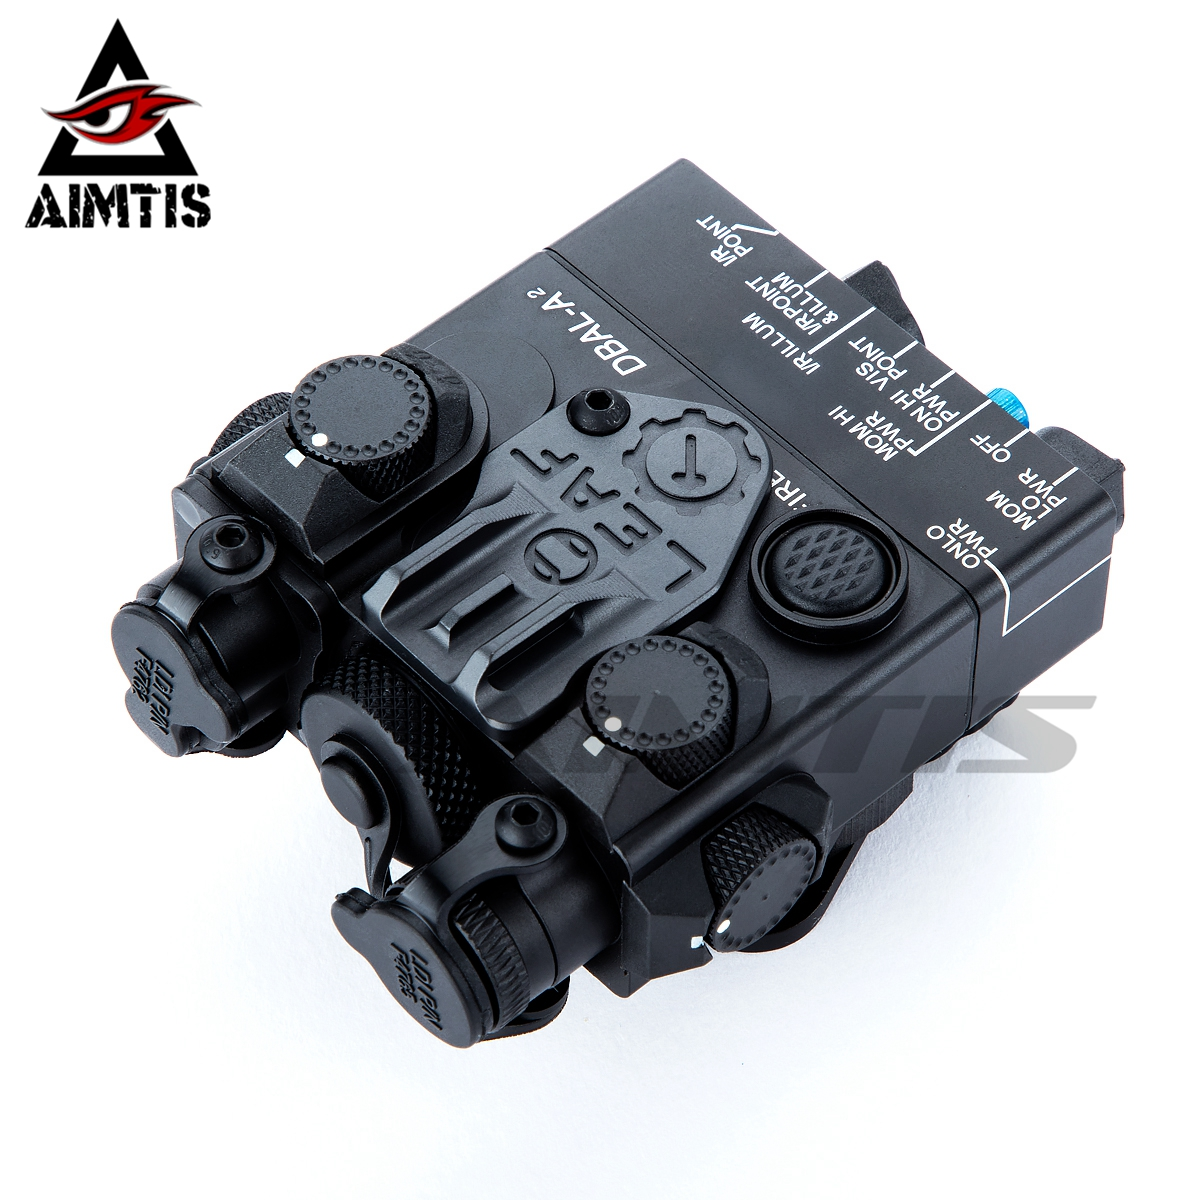 AIMTIS DBAL-A2 Weapon Light Red Laser Combo With Remote Switch Tactical Hunting Flashlight Rifle Airsoft LED